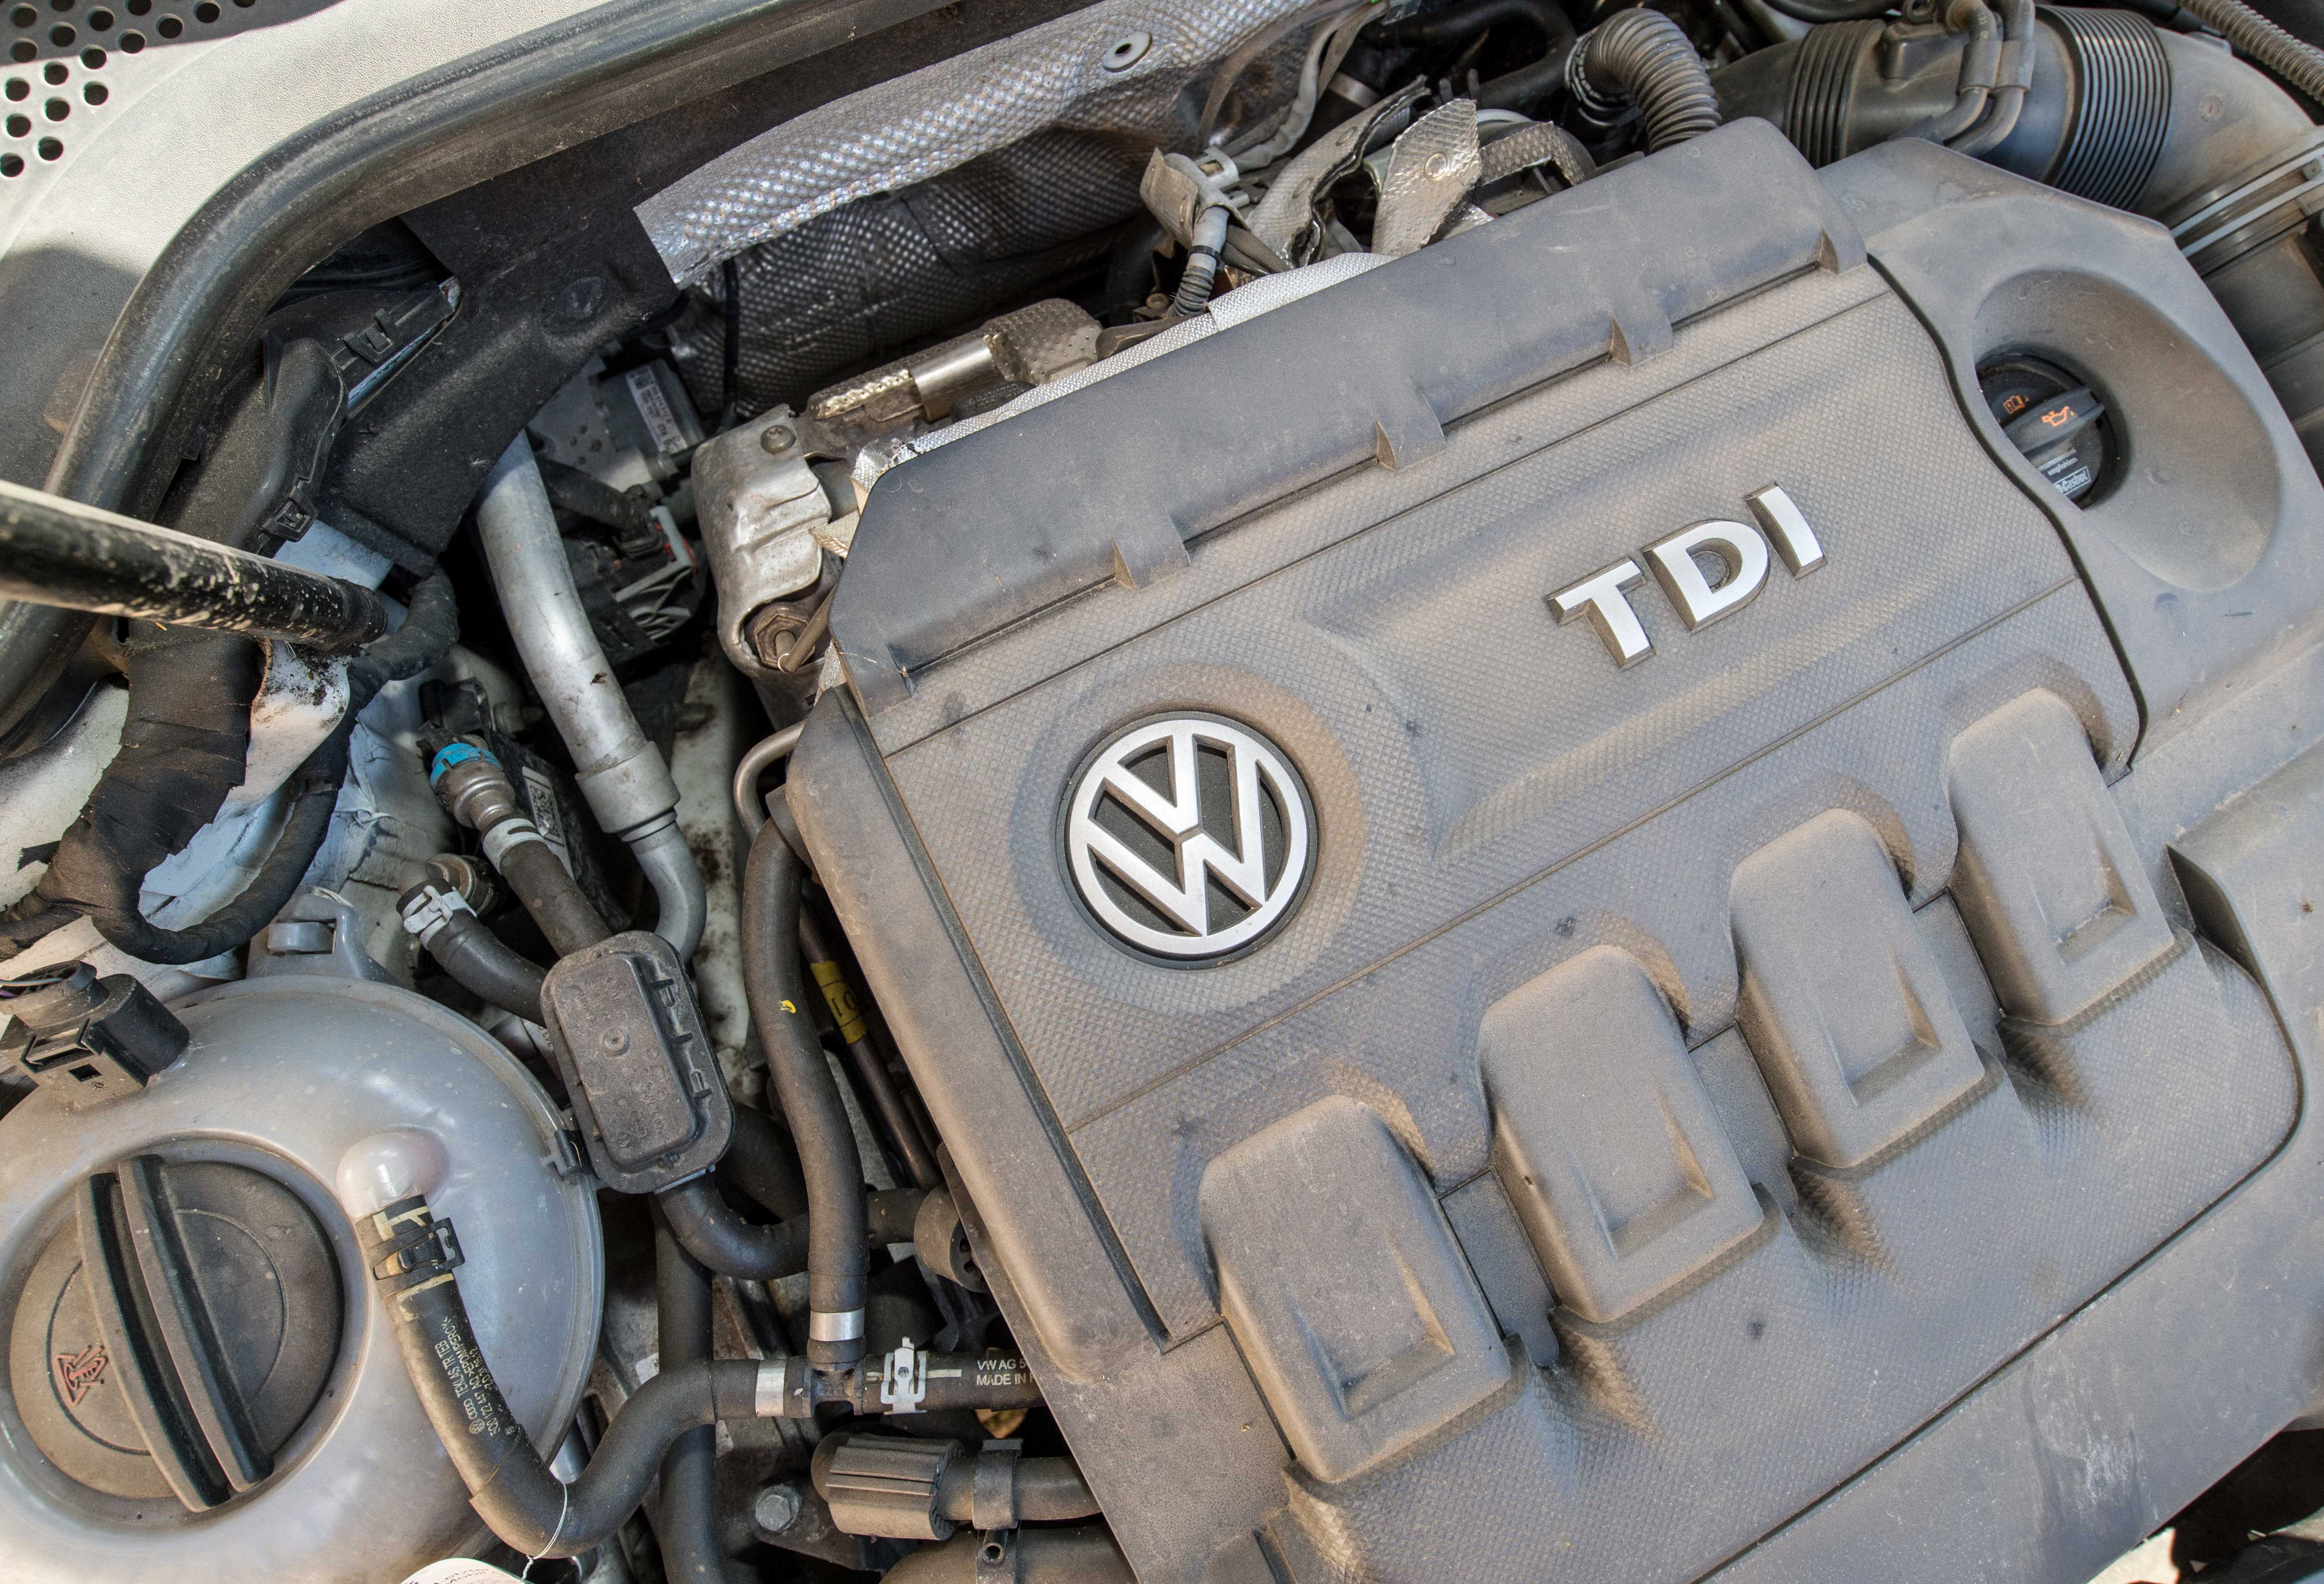 VW shares plunge after carmaker admits cheating in emissions tes